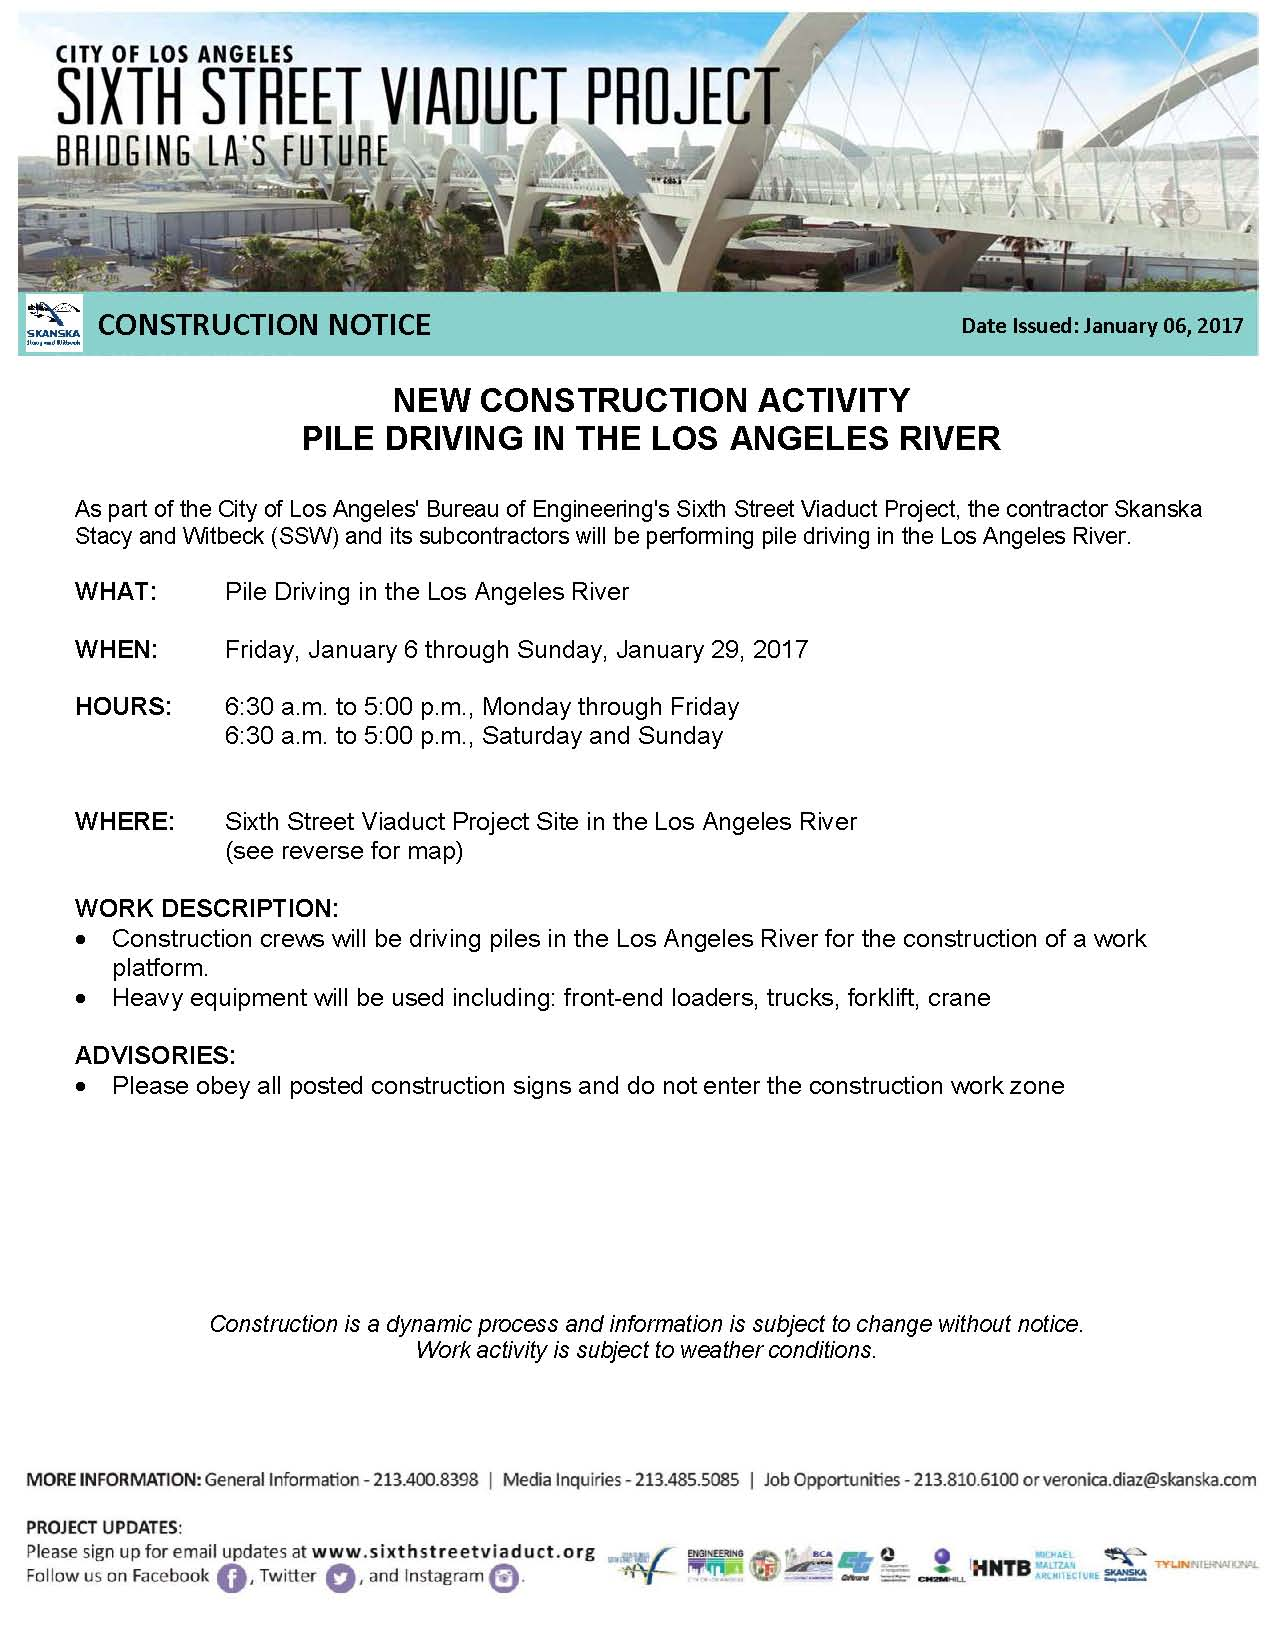 2017-01-05__SSW_Constrction_Notice_-_Pile_Driving_in_LA_River_Page_1.jpg